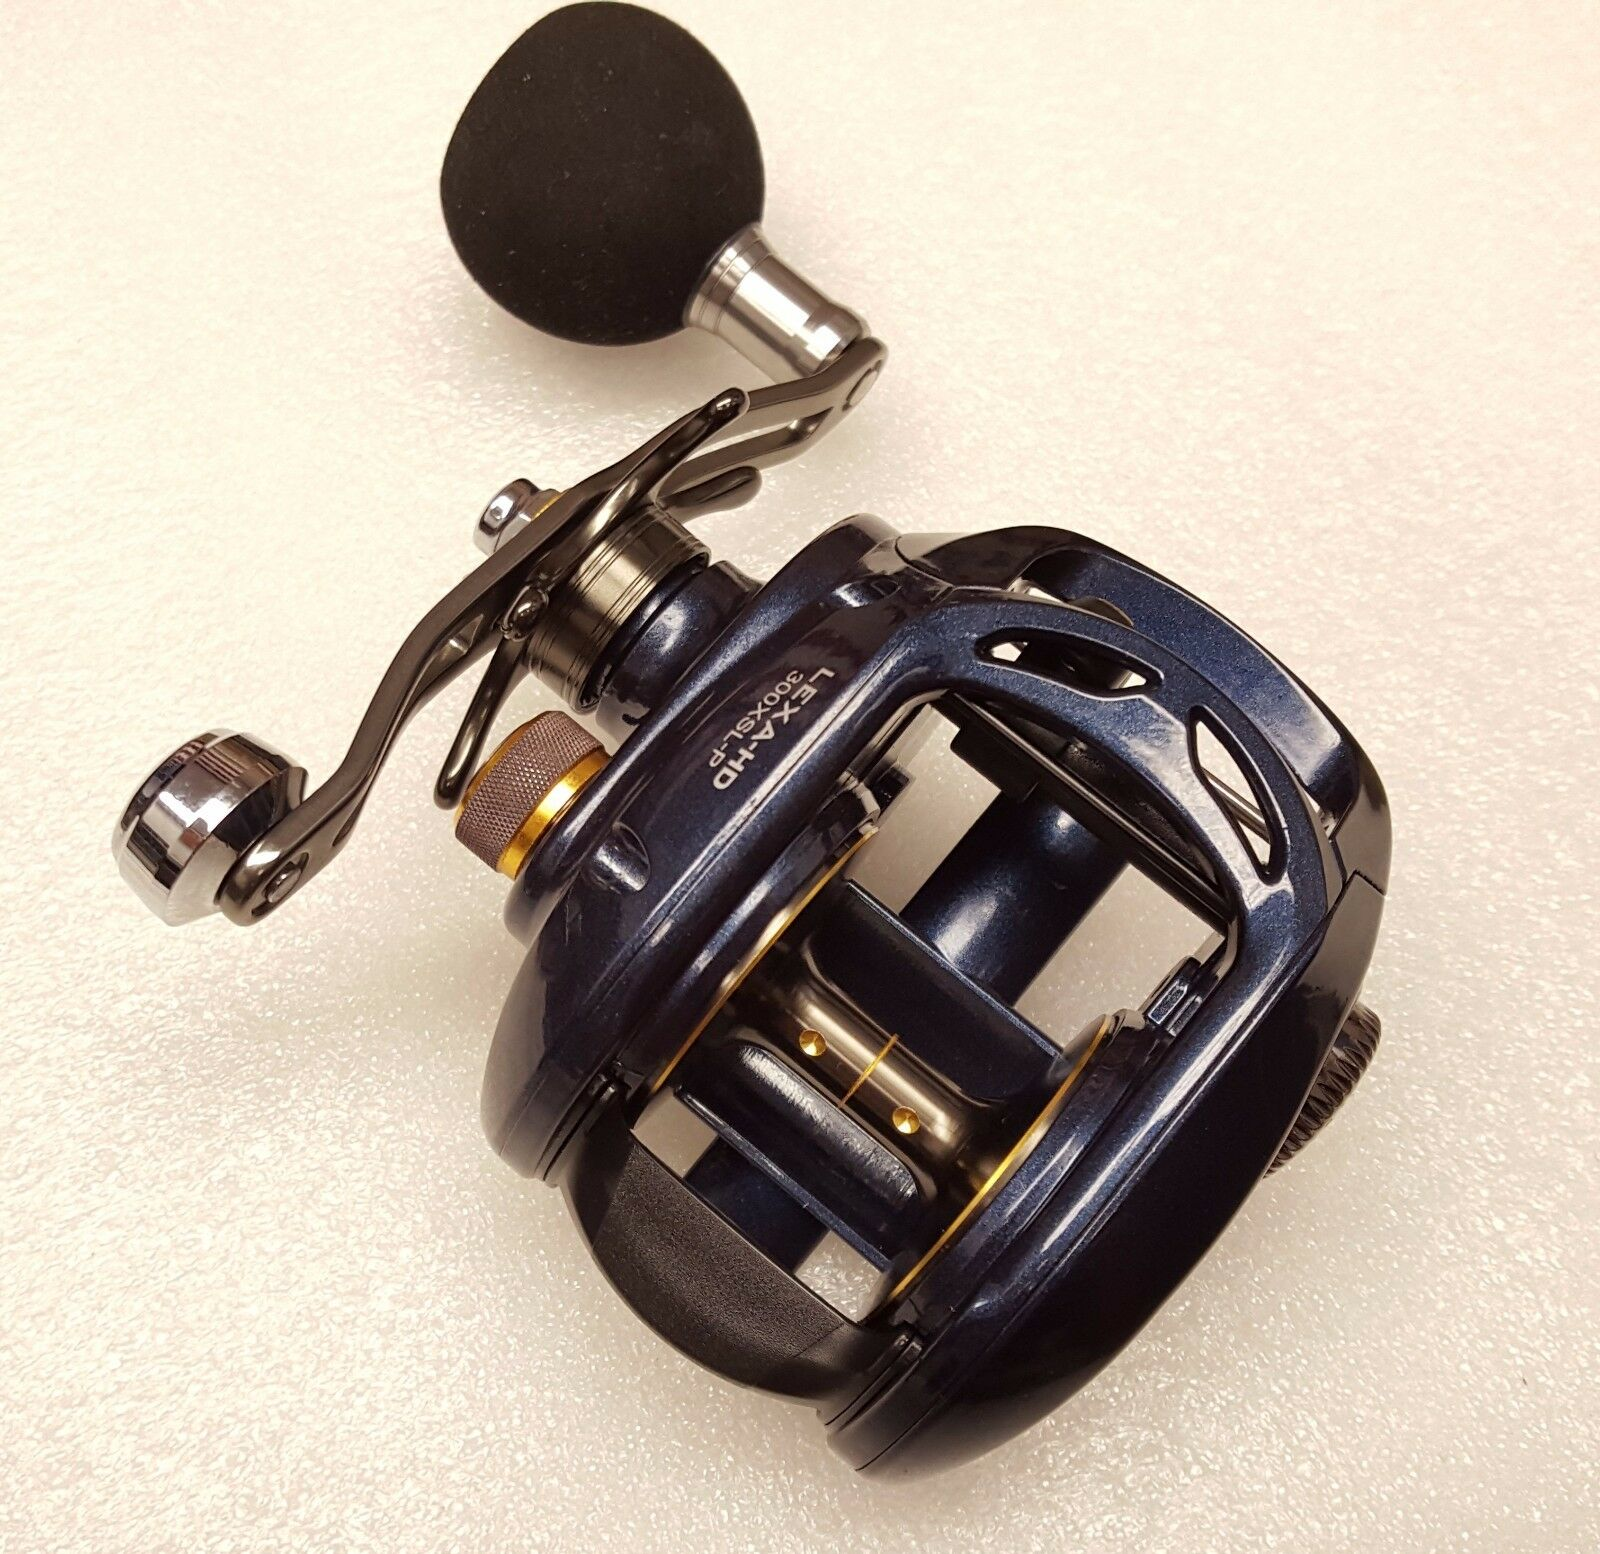 Daiwa Lexa HD 300 High Speed Left Hand Power Baitcast Reel Reel Baitcast 8.1:1 LEXA-HD300XSL-P 737a7c